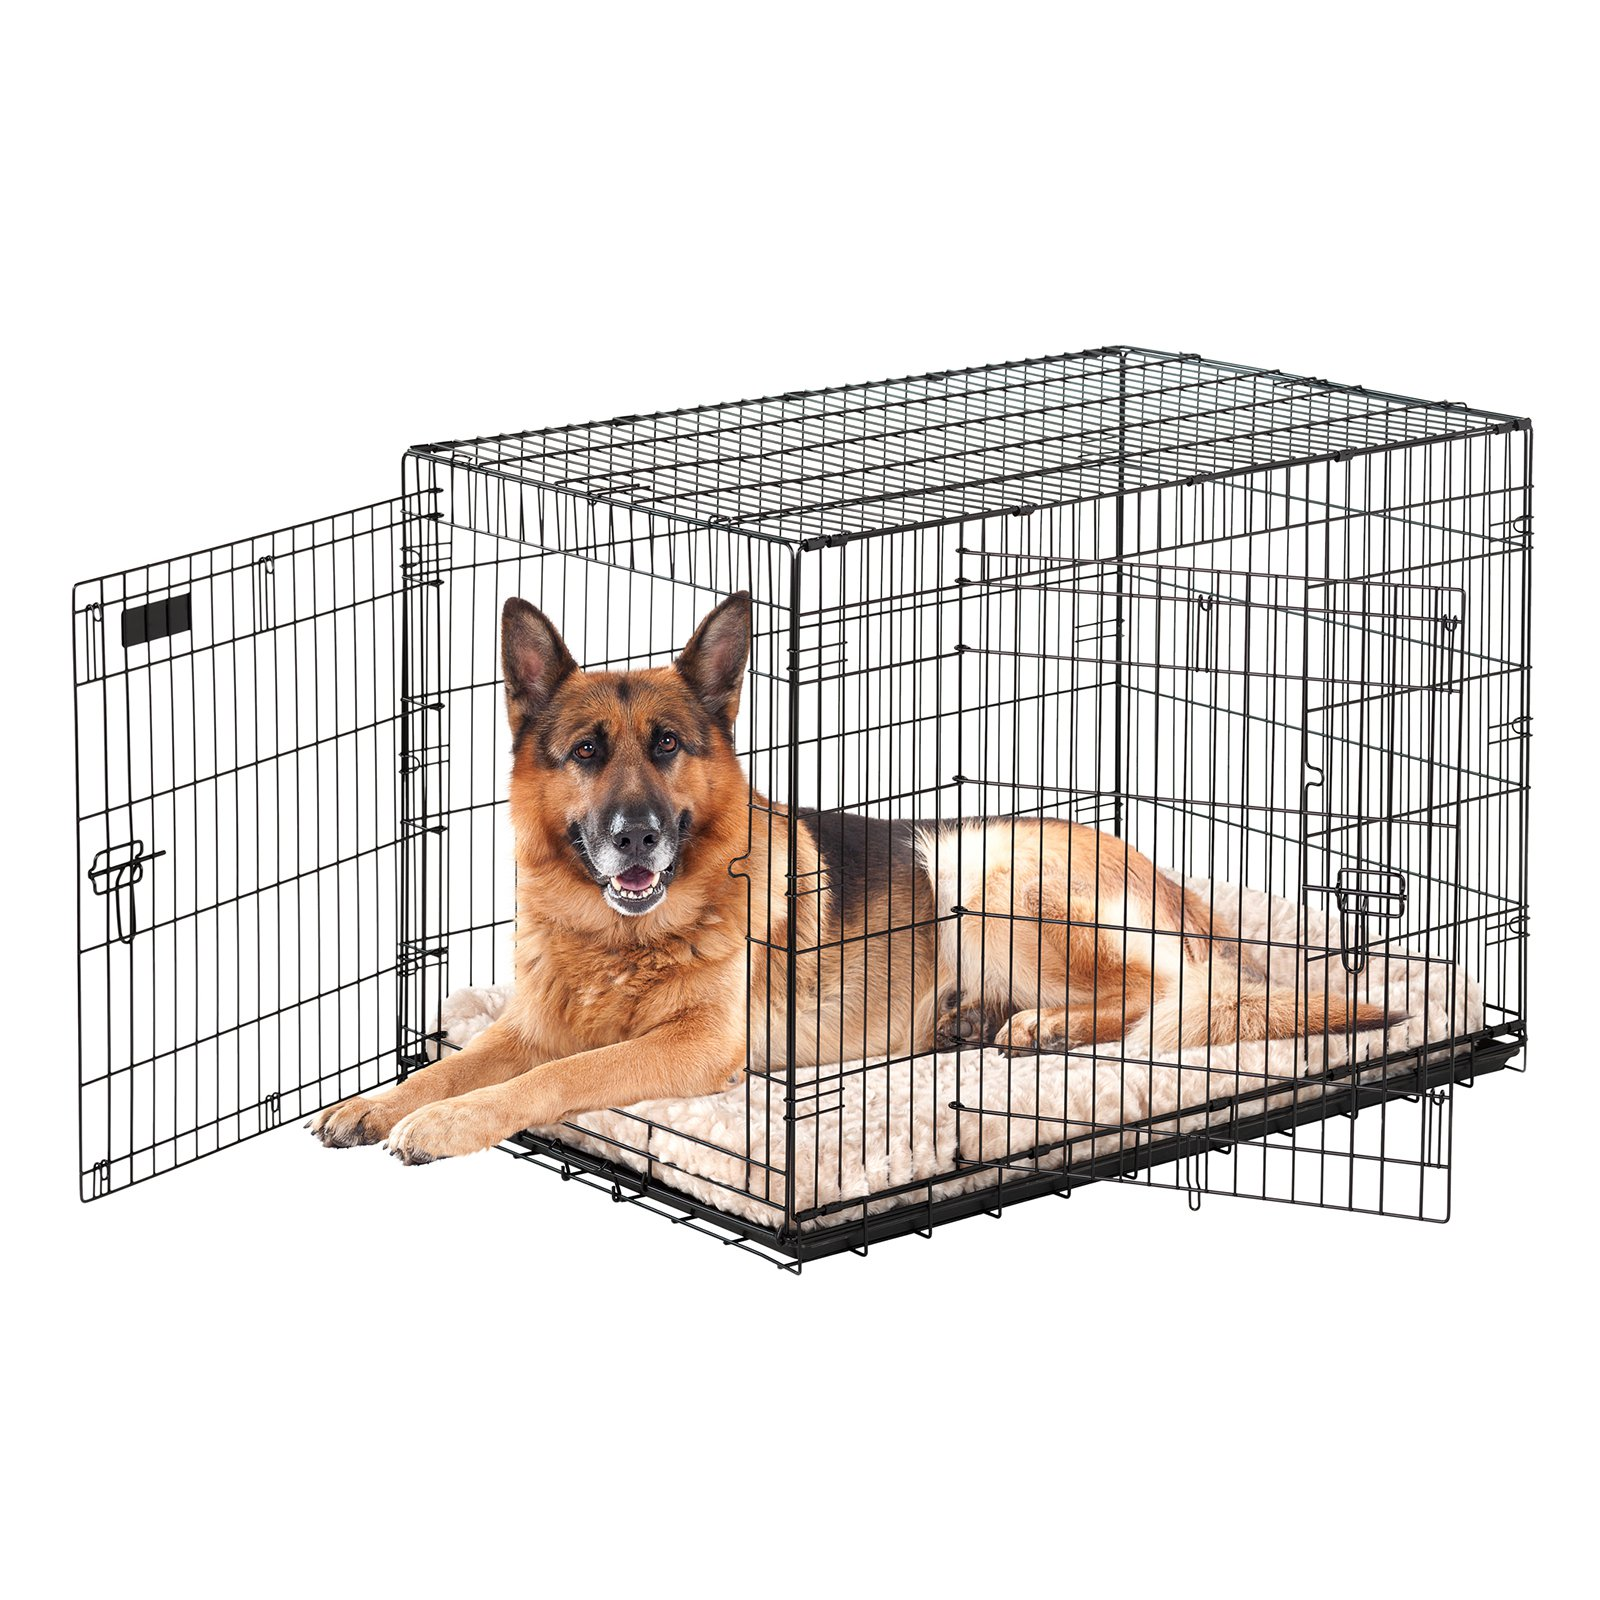 Precision Pet Great Crate - Black Metal Pet Crate 2000 - Dogs up to 25 Pounds - (24 Inch L x 18 Inch W x 20 Inch H)